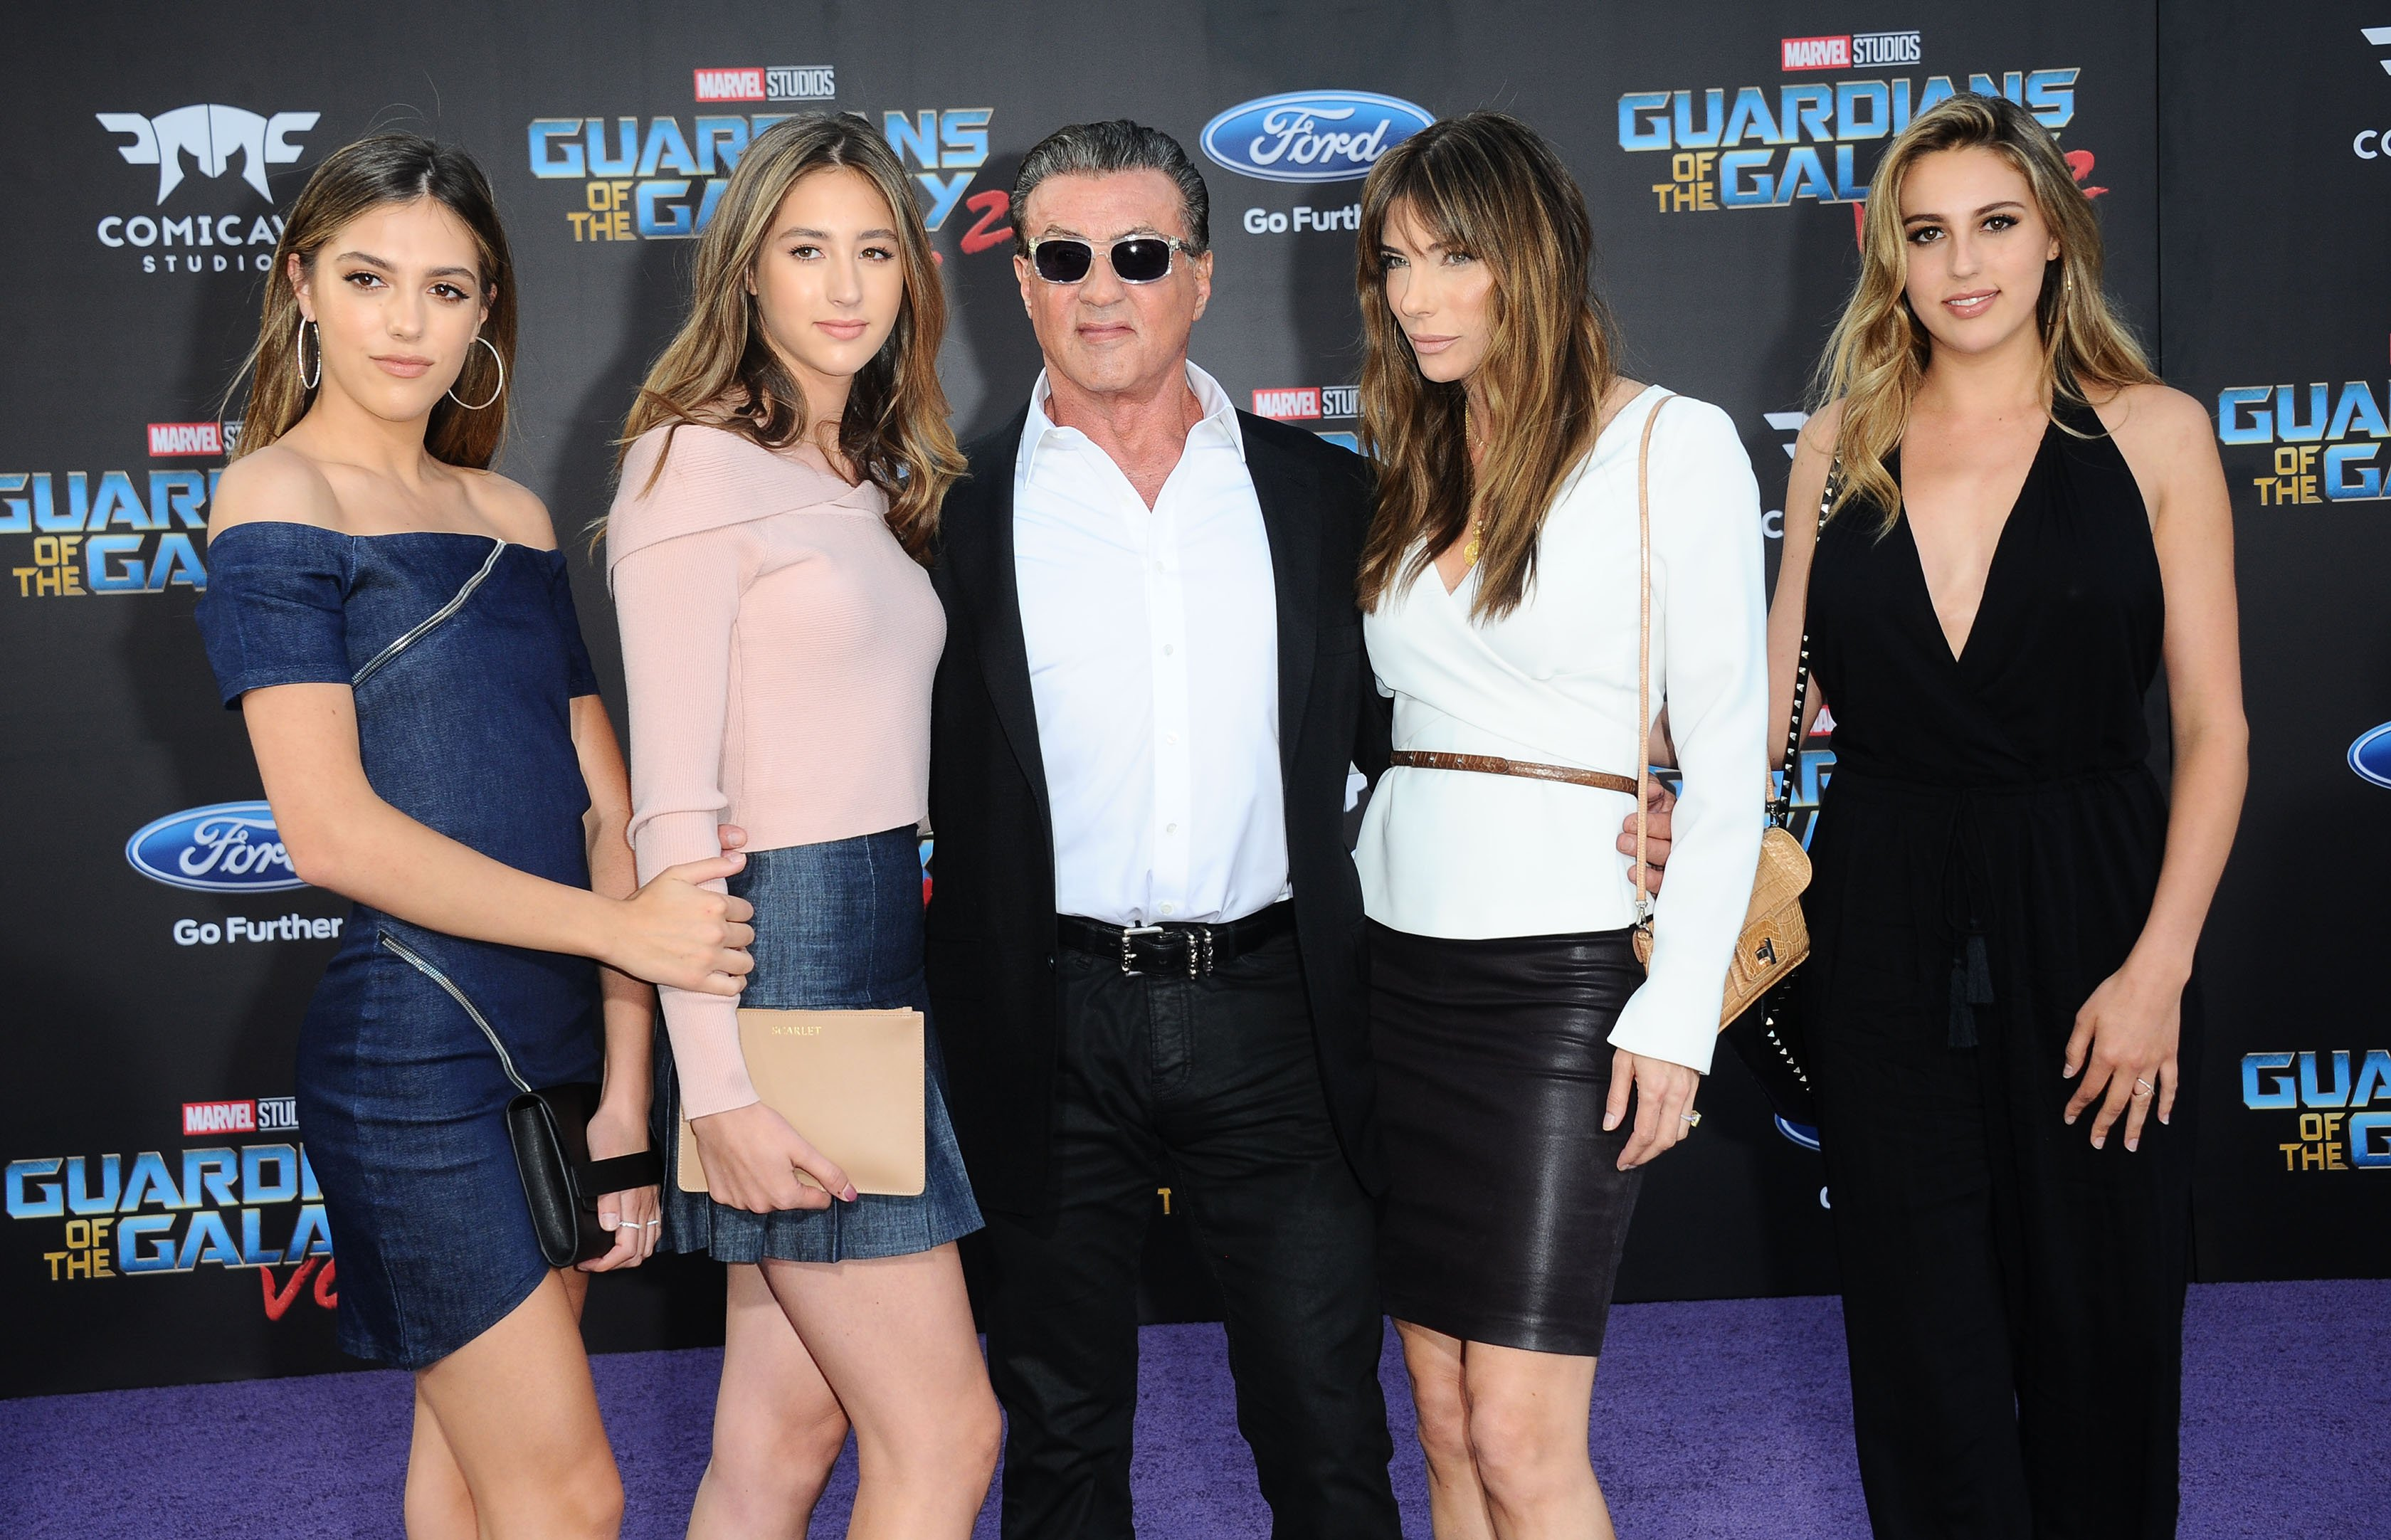 -Hollywood, CA - 04/19/2017 Guardians Of The Galaxy Vol. 2 Los Angeles Premiere -PICTURED: Sylvester Stallone, Family -, Image: 329566529, License: Rights-managed, Restrictions: , Model Release: no, Credit line: Profimedia, INSTAR Images